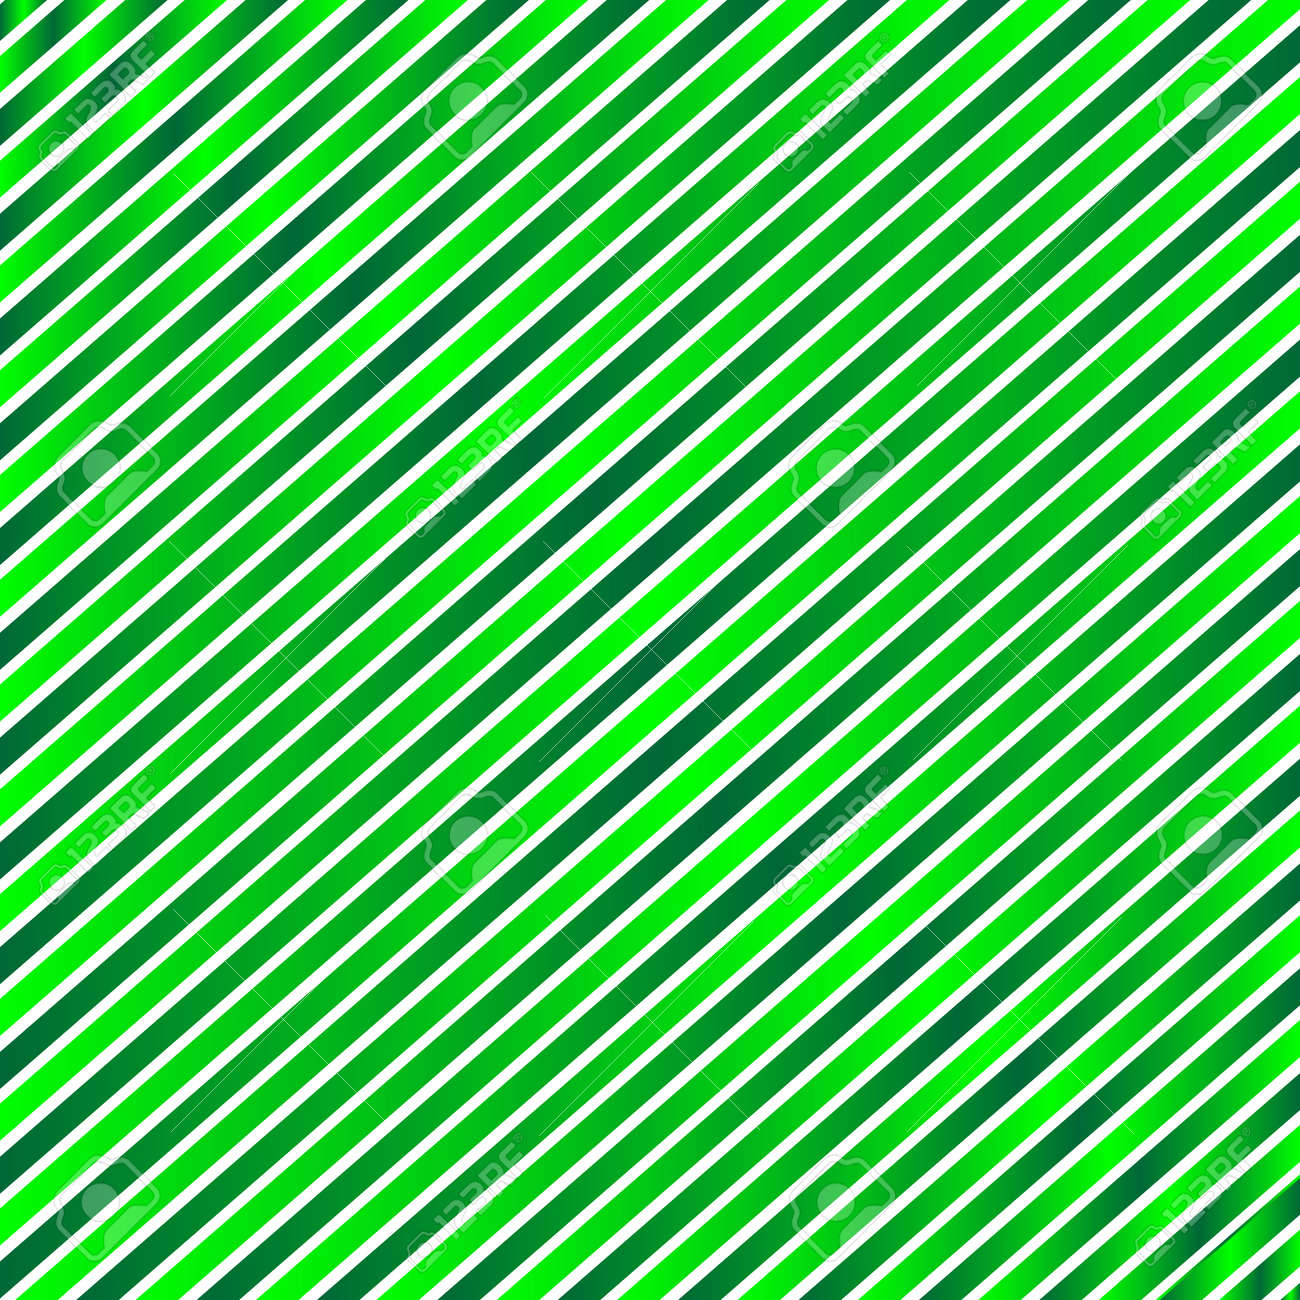 Background image o linear gradient - Illustration Of Green Striped Linear Gradient Background Stock Vector 21569943